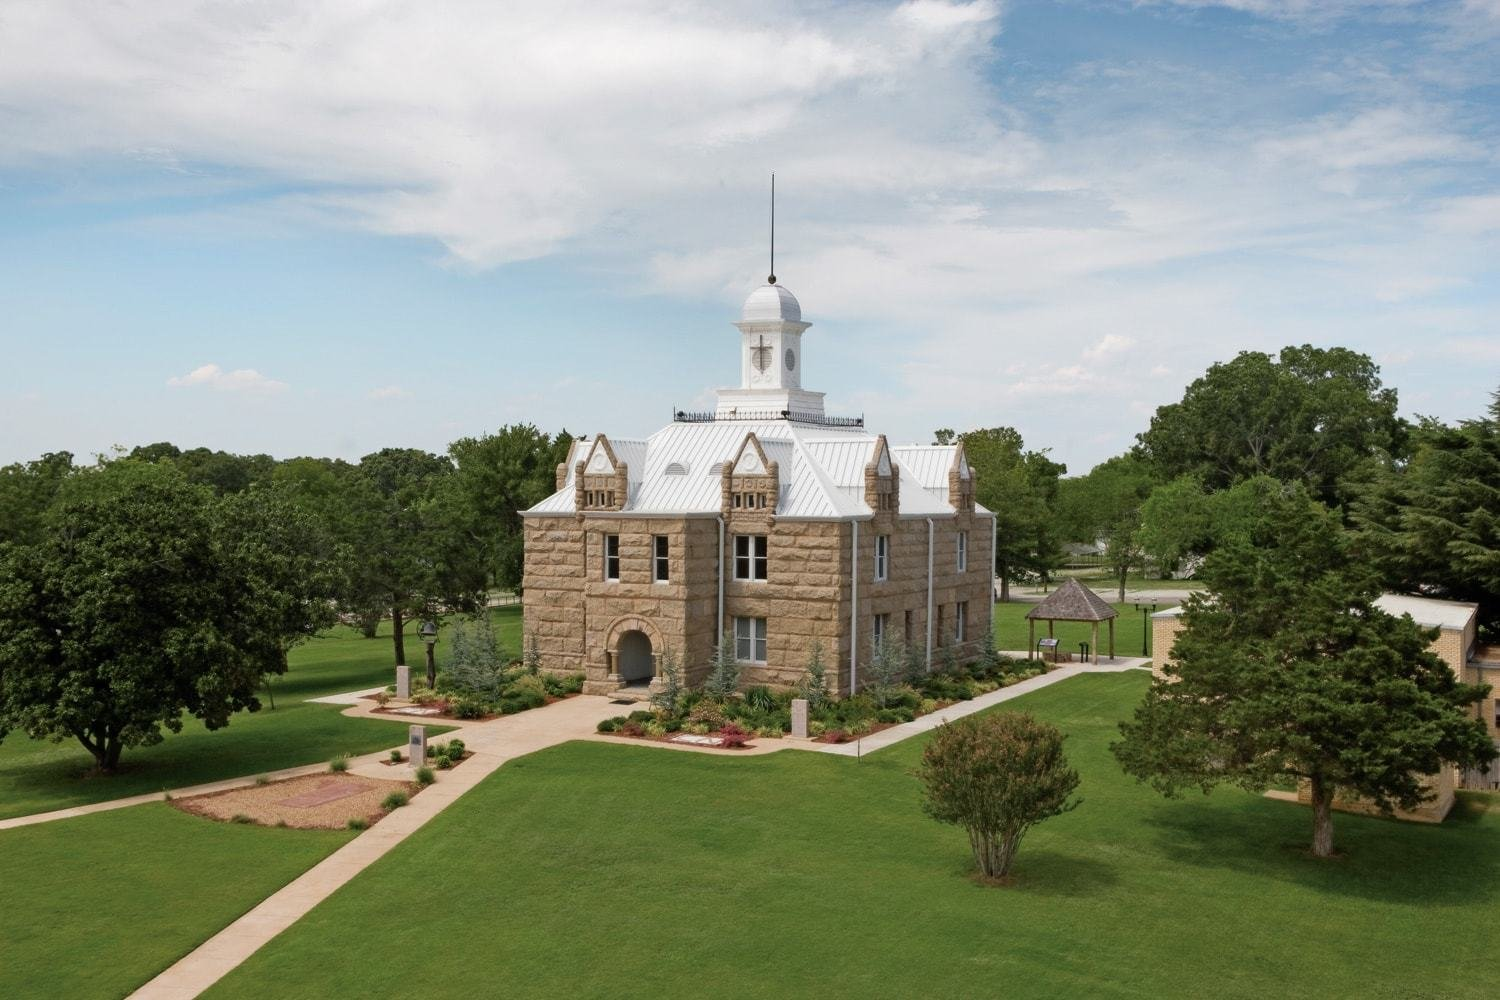 Capitol Building (image from Chickasaw Country)